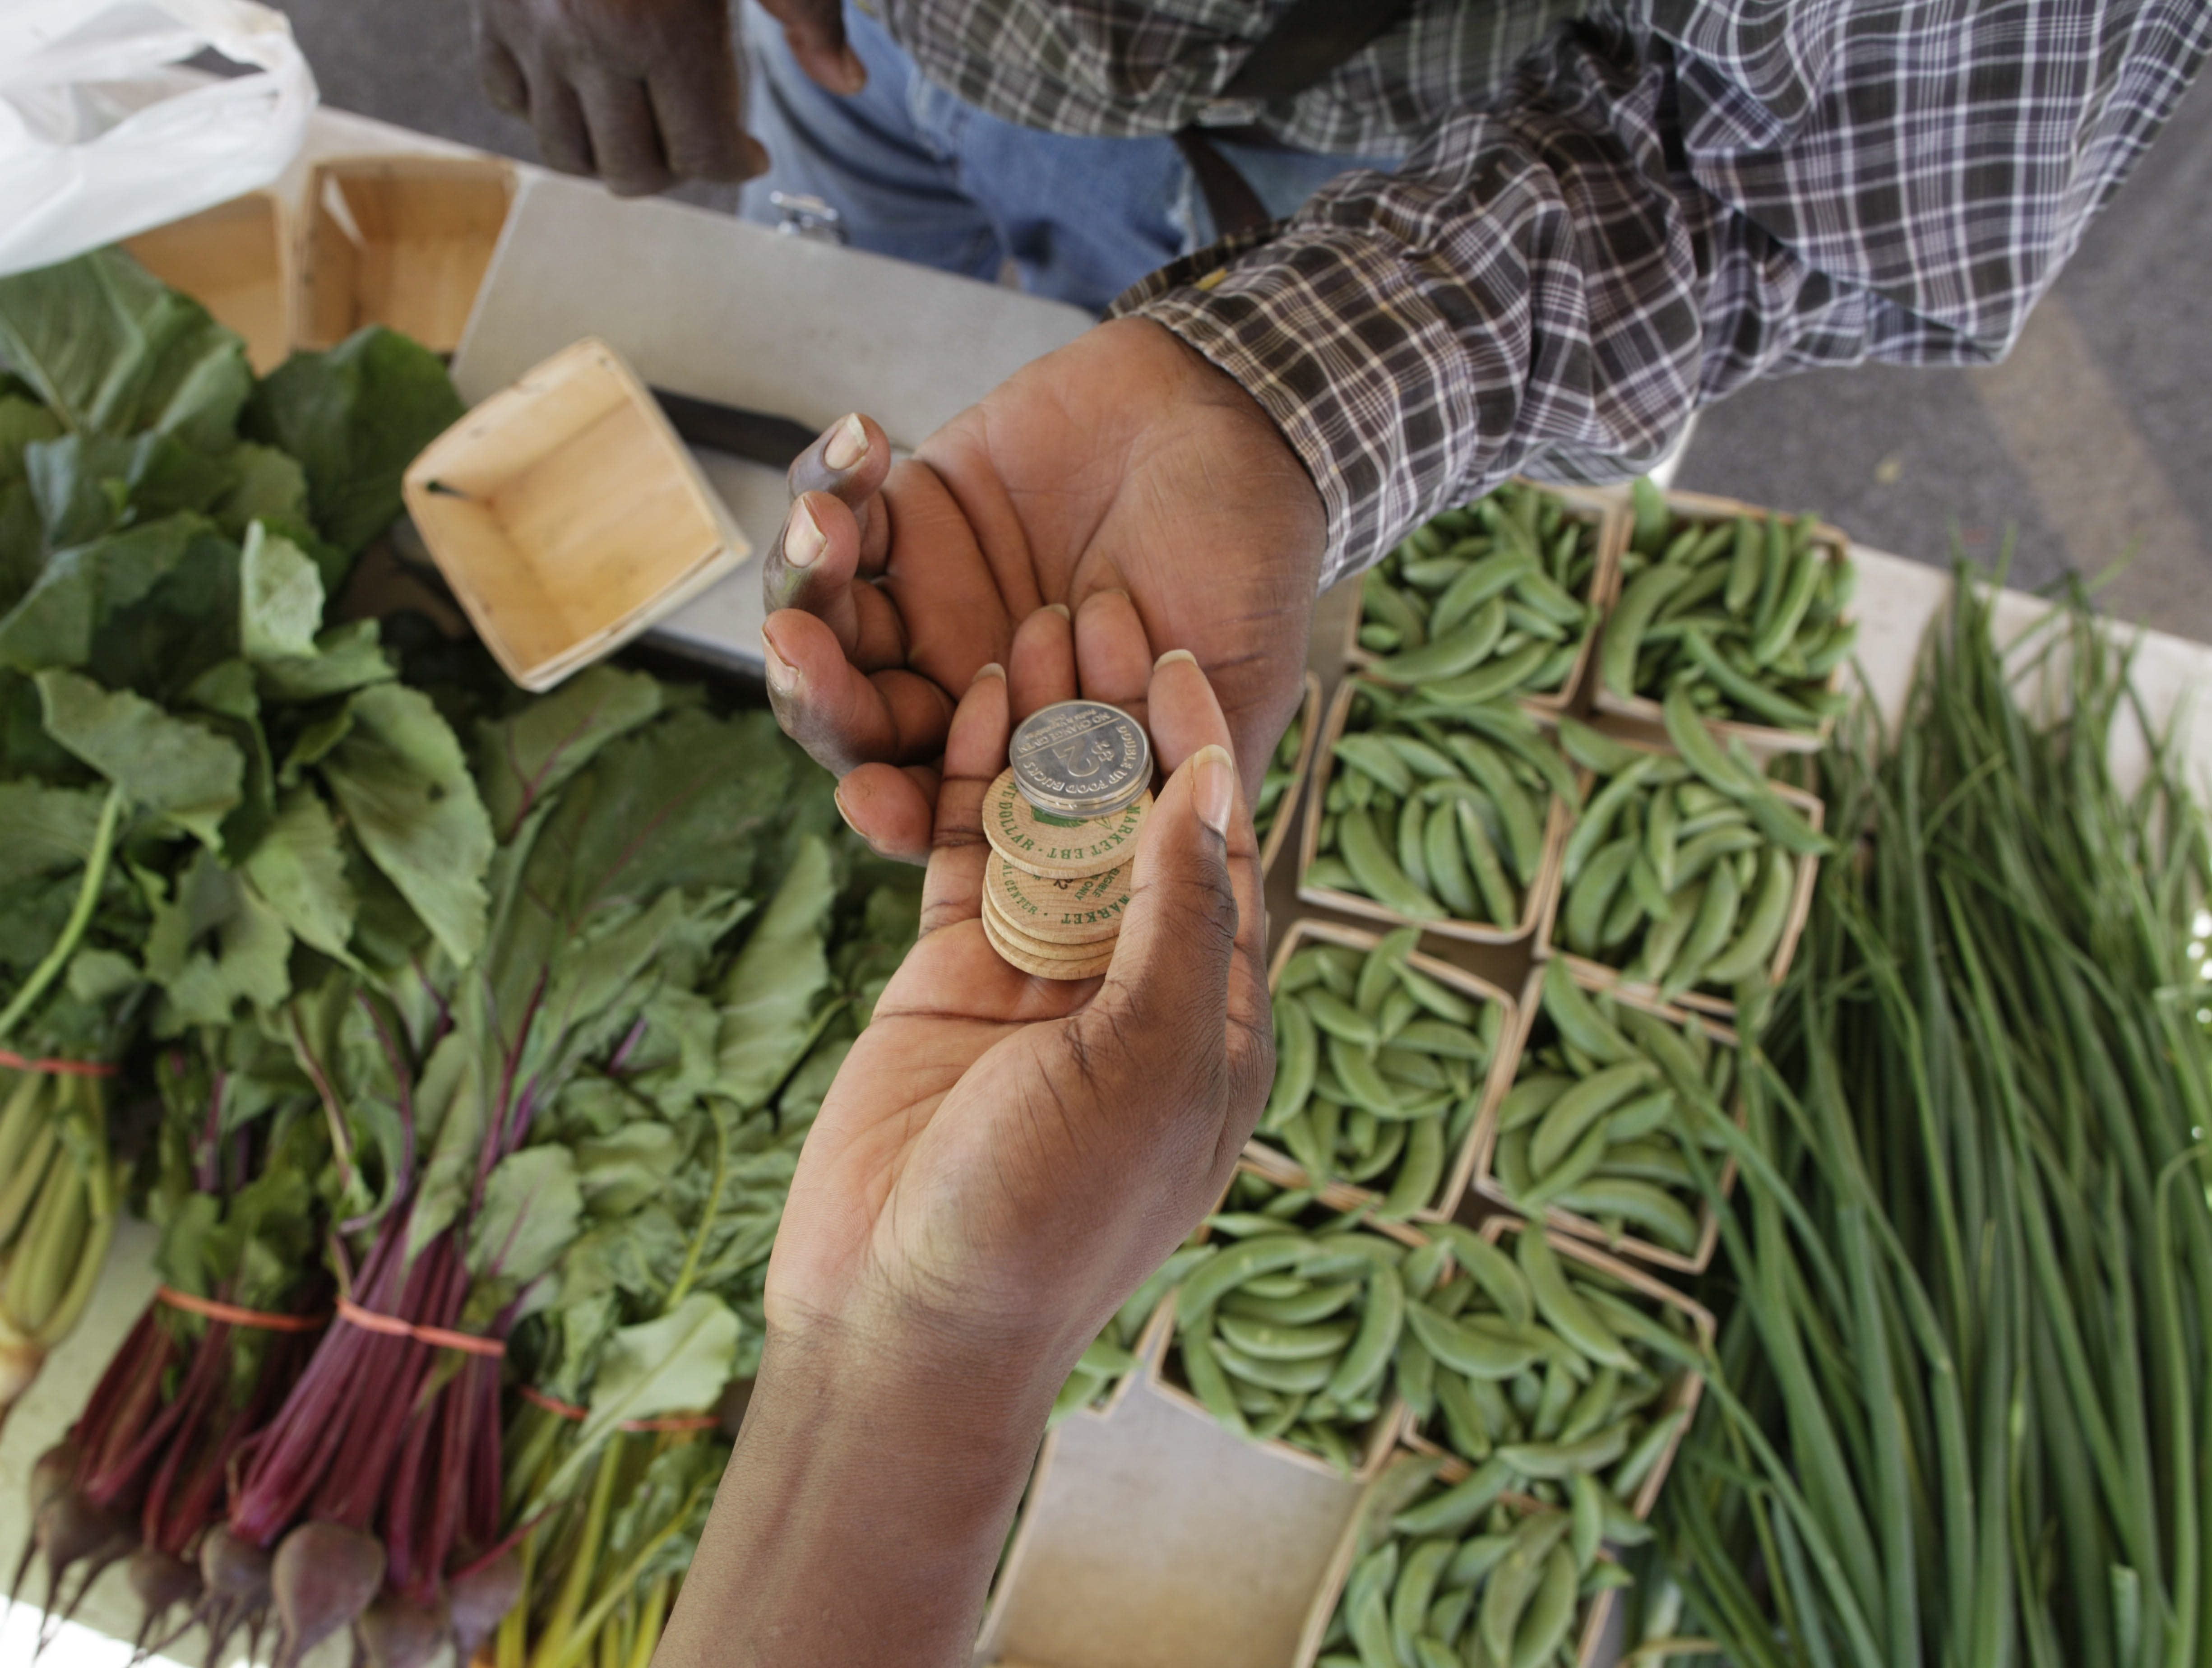 """A customer uses ECMC Farmers' Market currency tokens and """"Double Up Food Bucks,"""" two-dollar coins given to shoppers using their state benefit cards to purchase produce."""